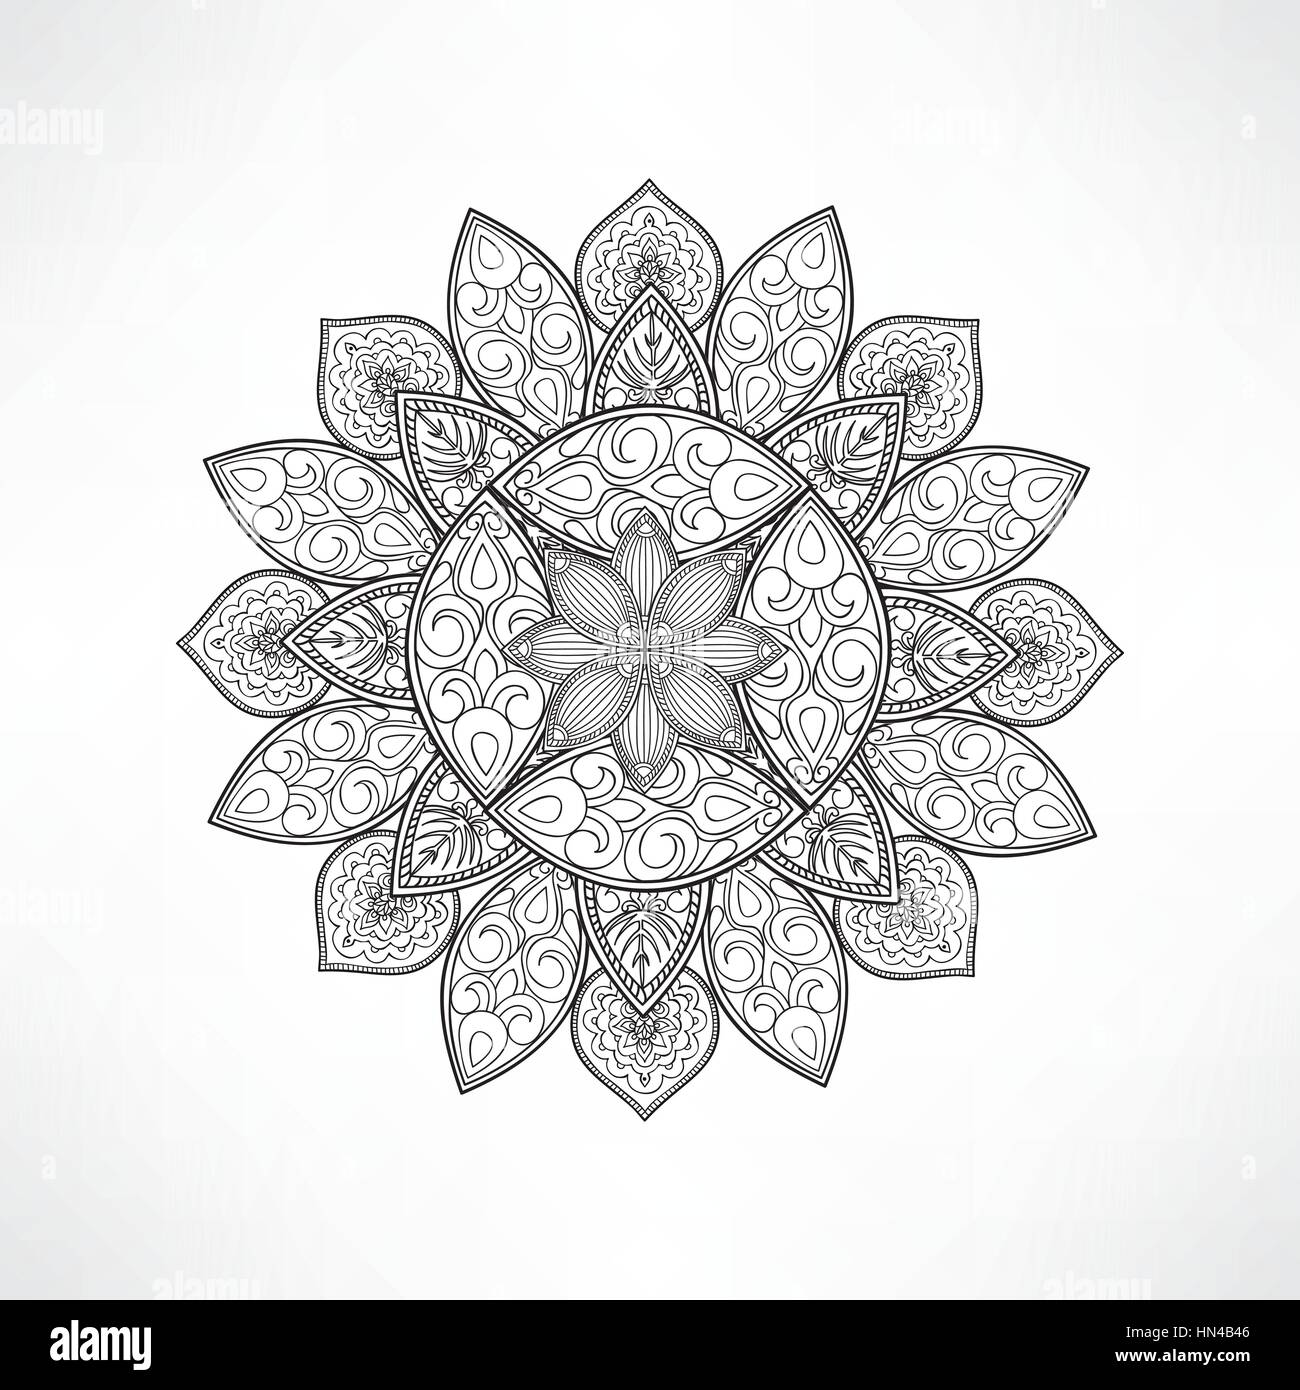 Geometric Flower Mandala For Coloring Vector Page Art Design Intricate Pattern Unusual Tattoo Outline Ma